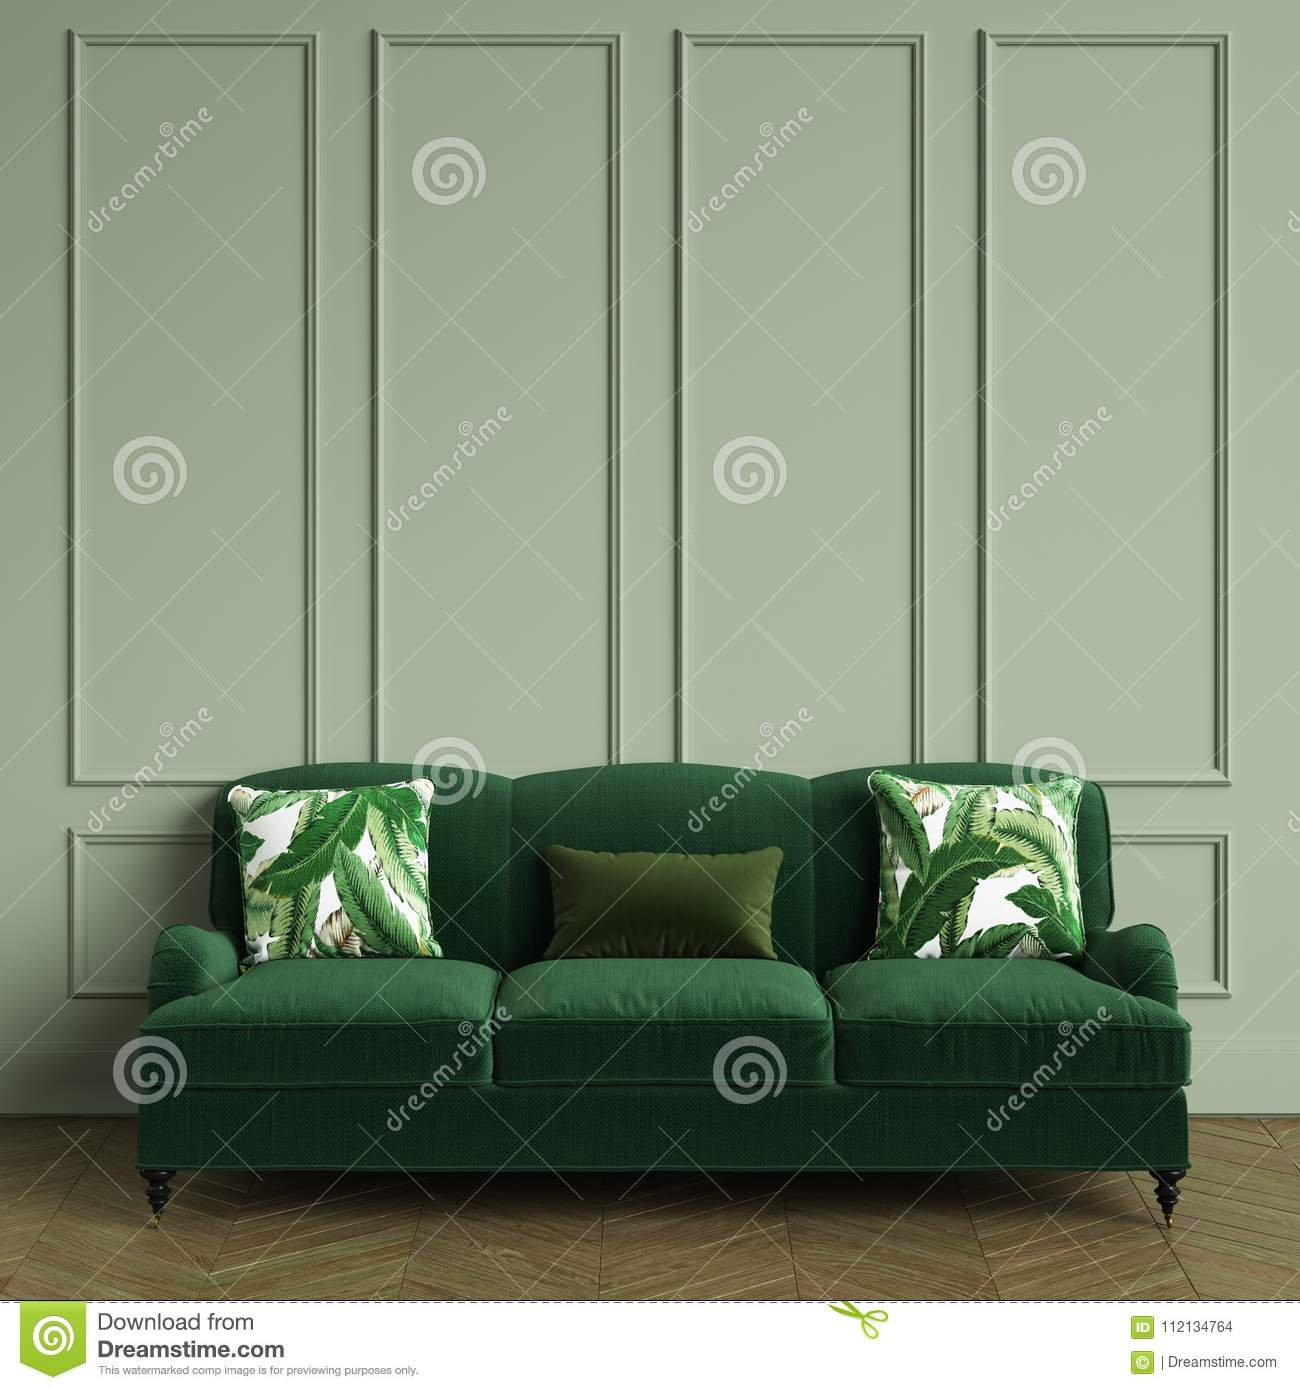 Classic Green Sofa,pillows With Tropic Leaves Print Standing ...